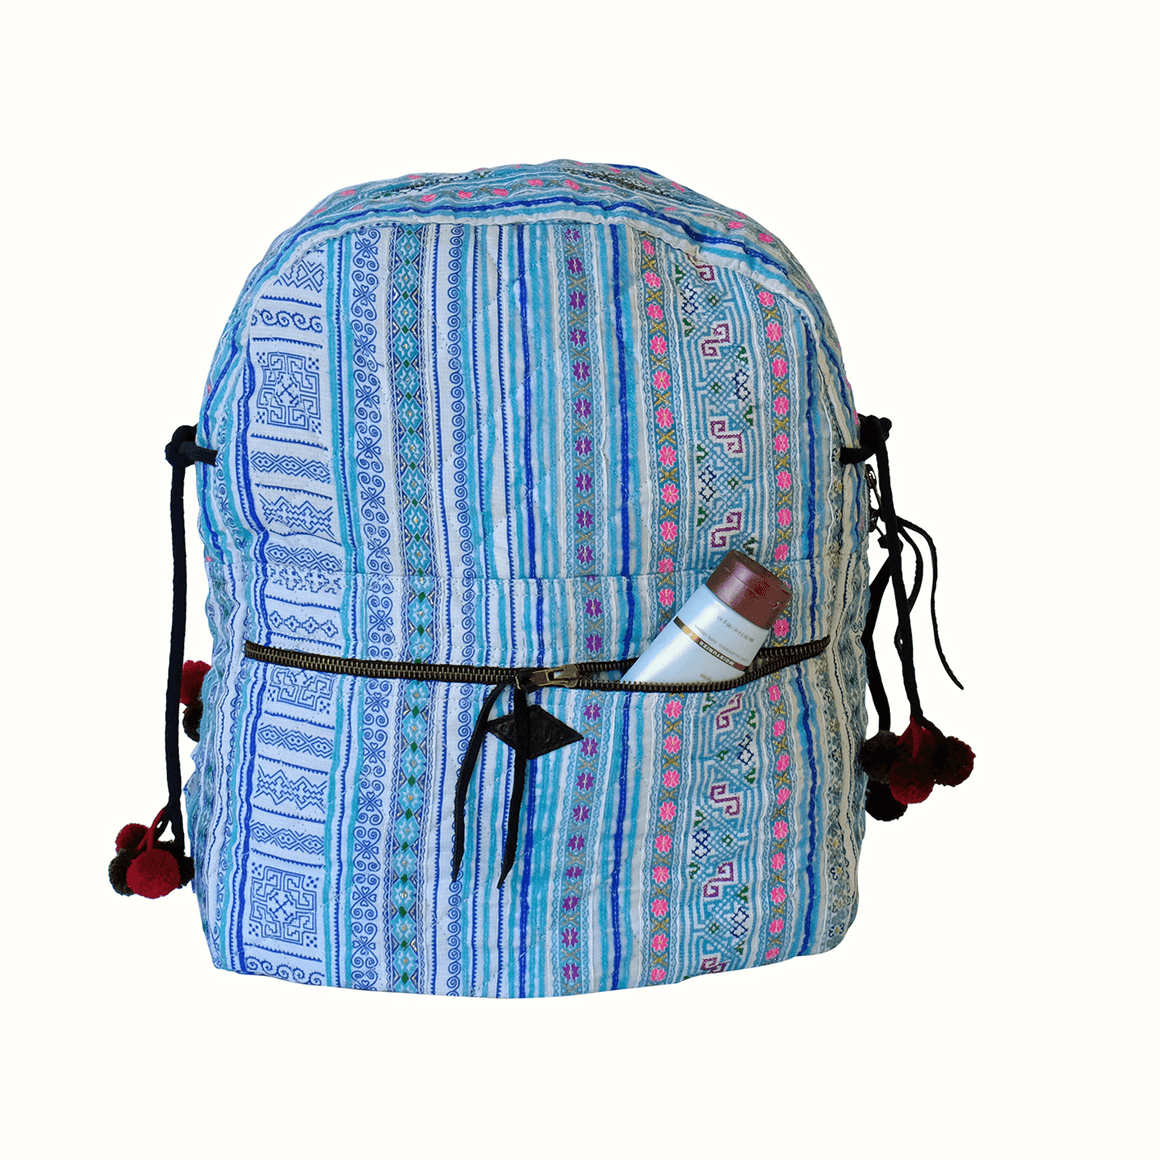 Samui Bags Ocean Breeze Backpack Handmade Thai Bag